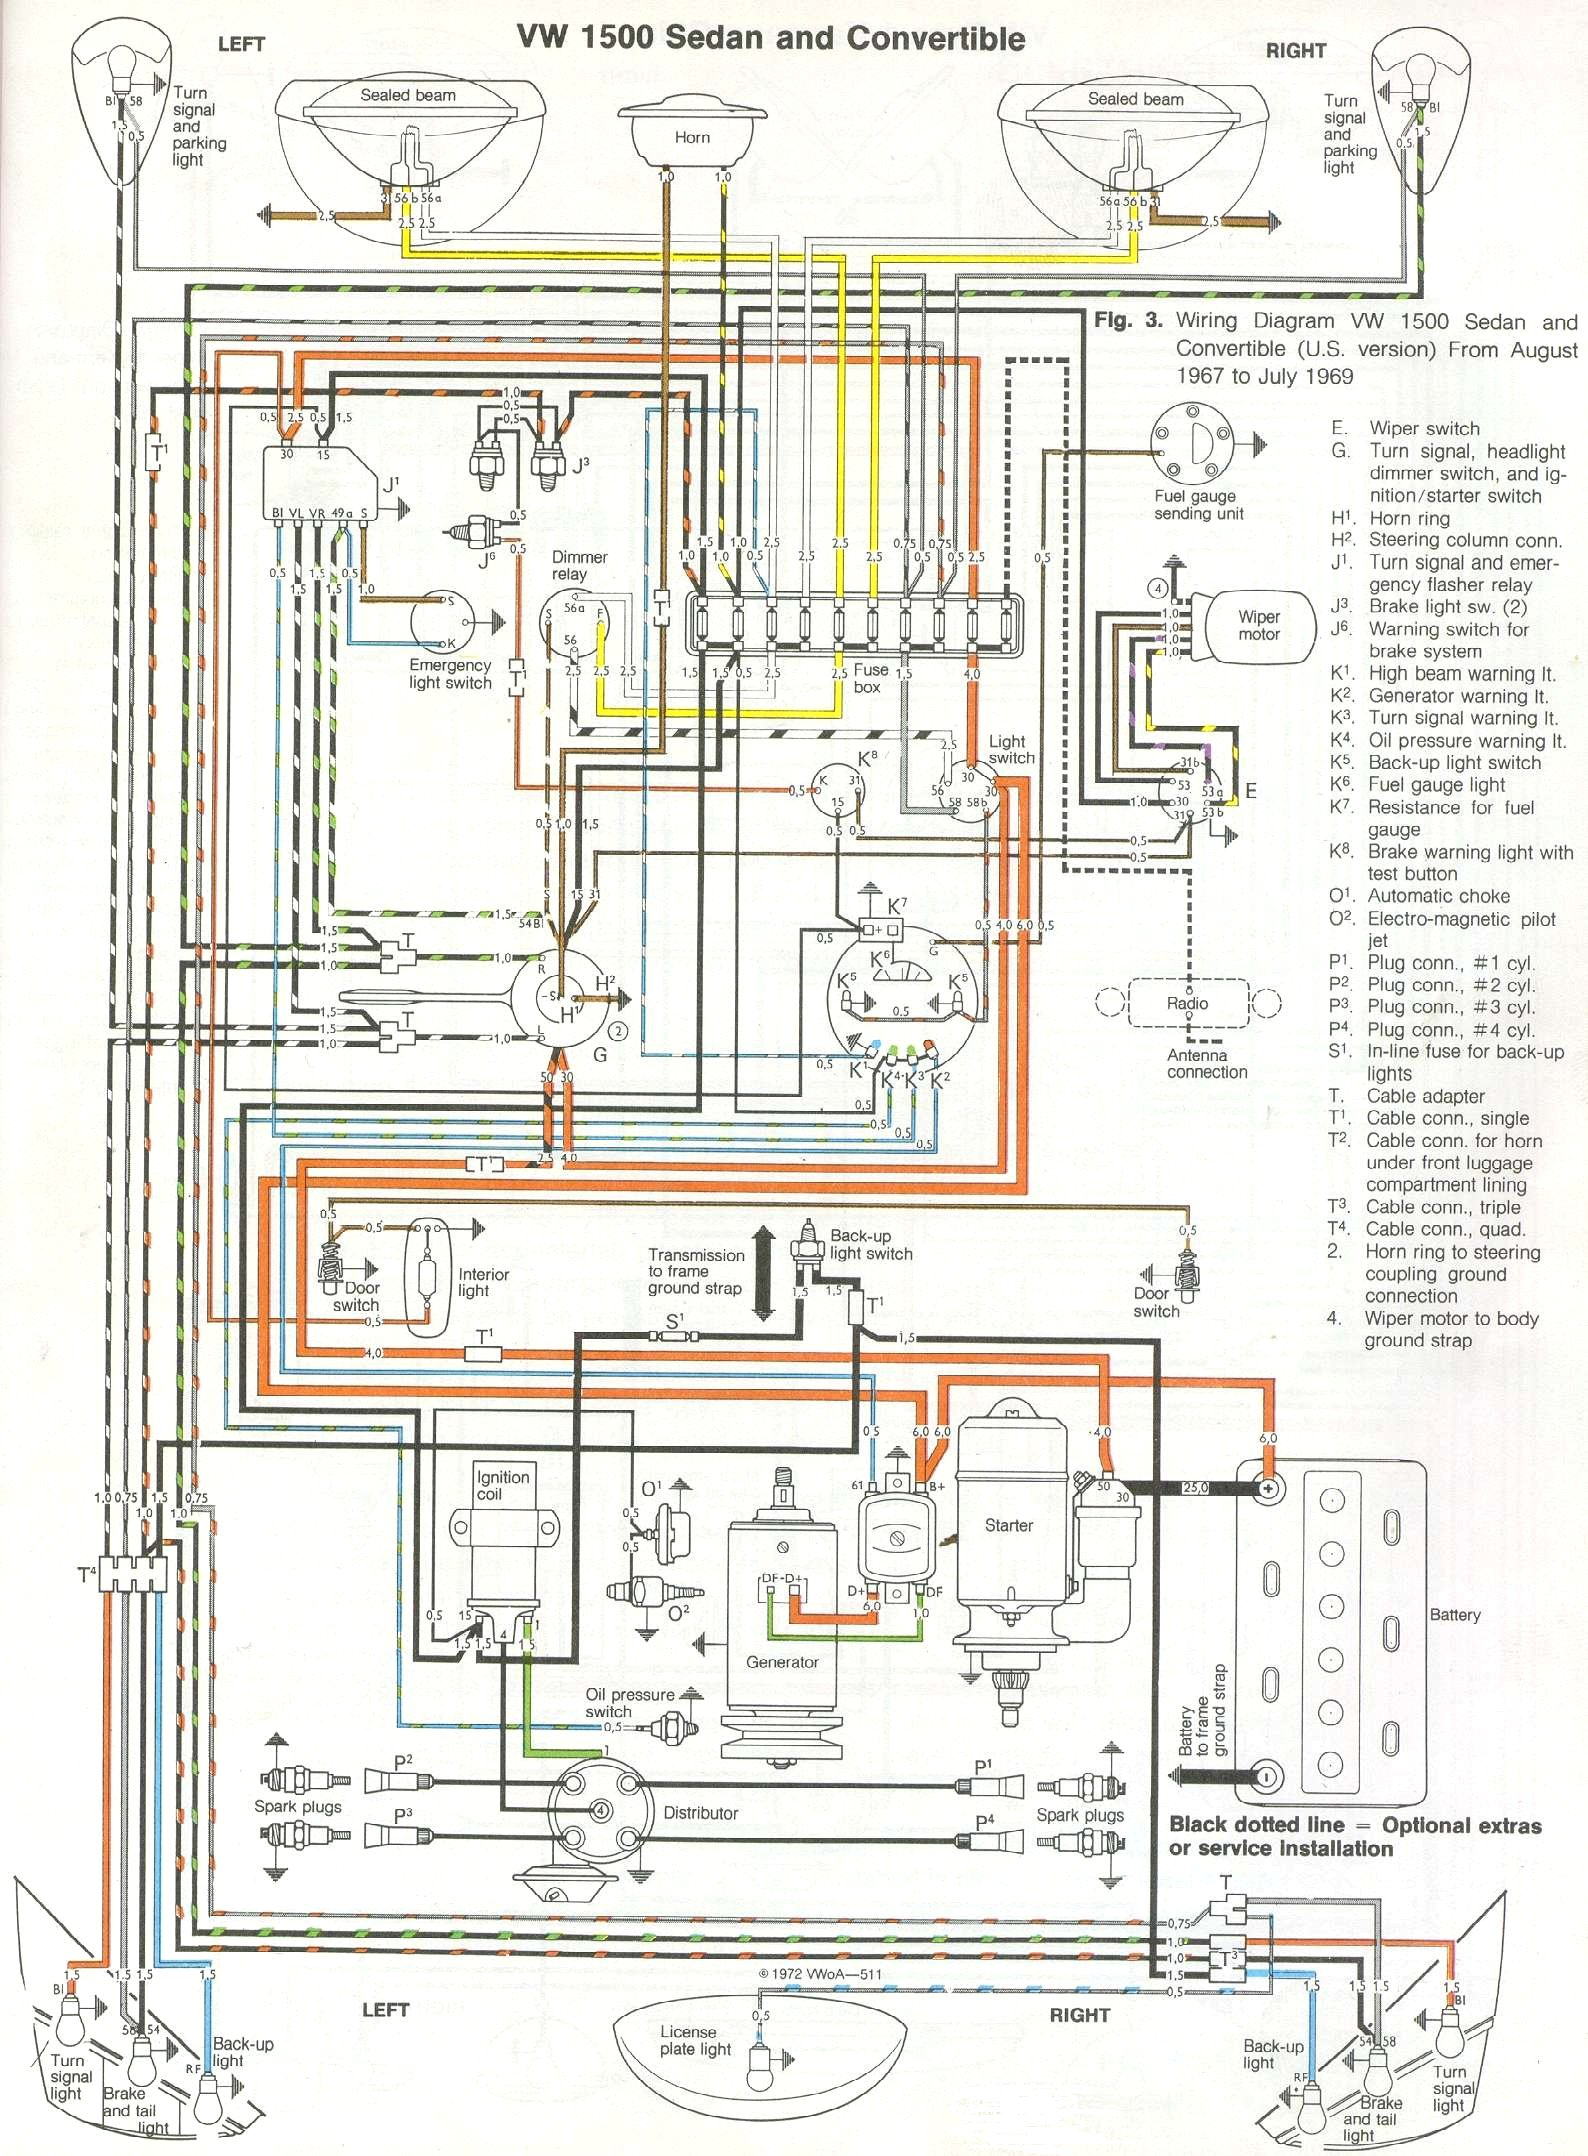 vw generator wiring diagram wiring diagrams online vw generator wiring diagram